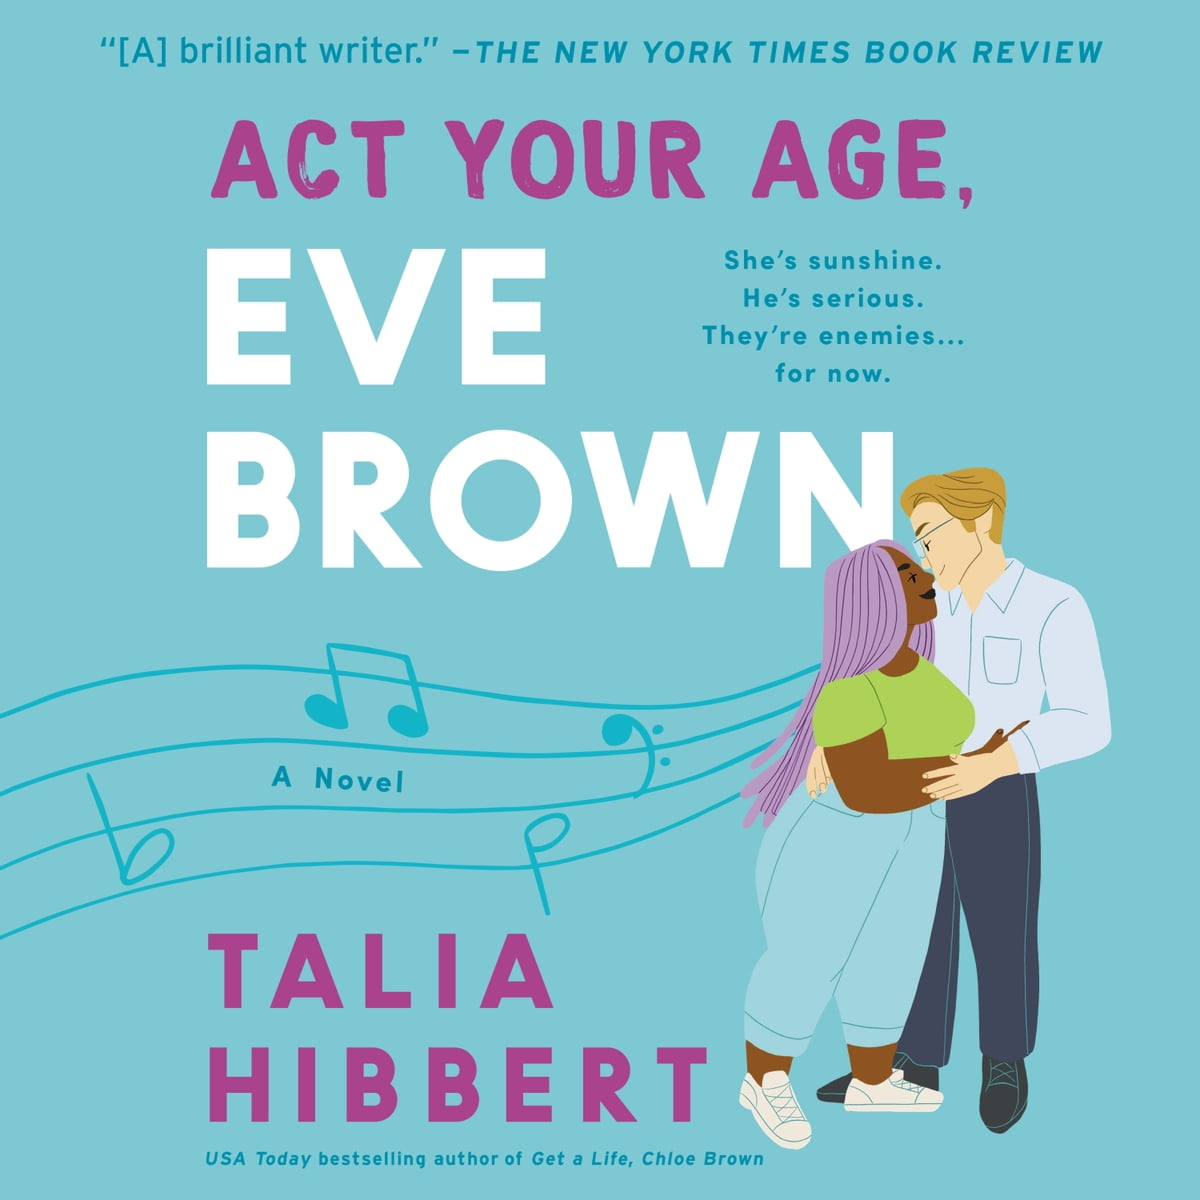 Act Your Age, Eve Brown Audiobook by Talia Hibbert - 9780062941299 |  Rakuten Kobo